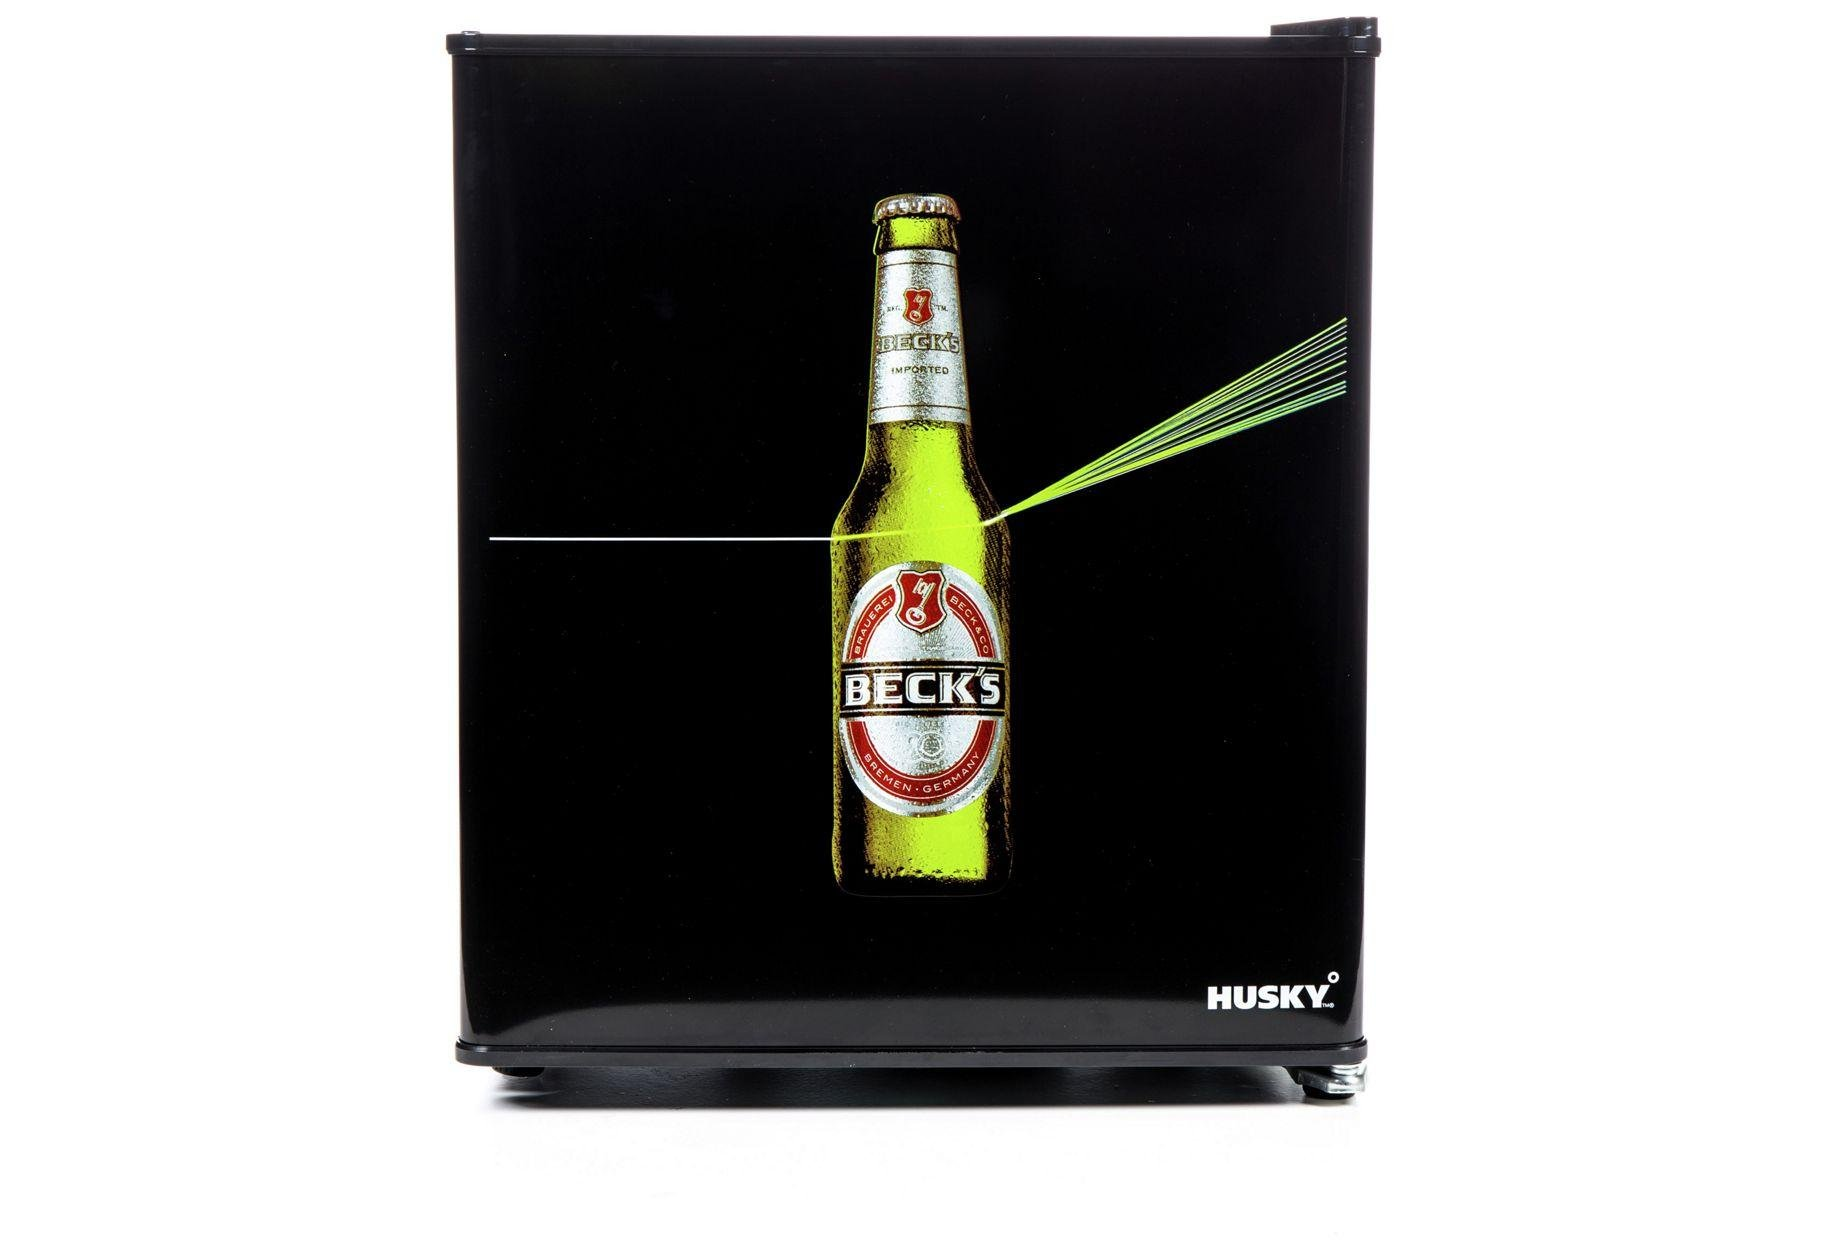 Husky - Becks 43 Litre - Mini Fridge